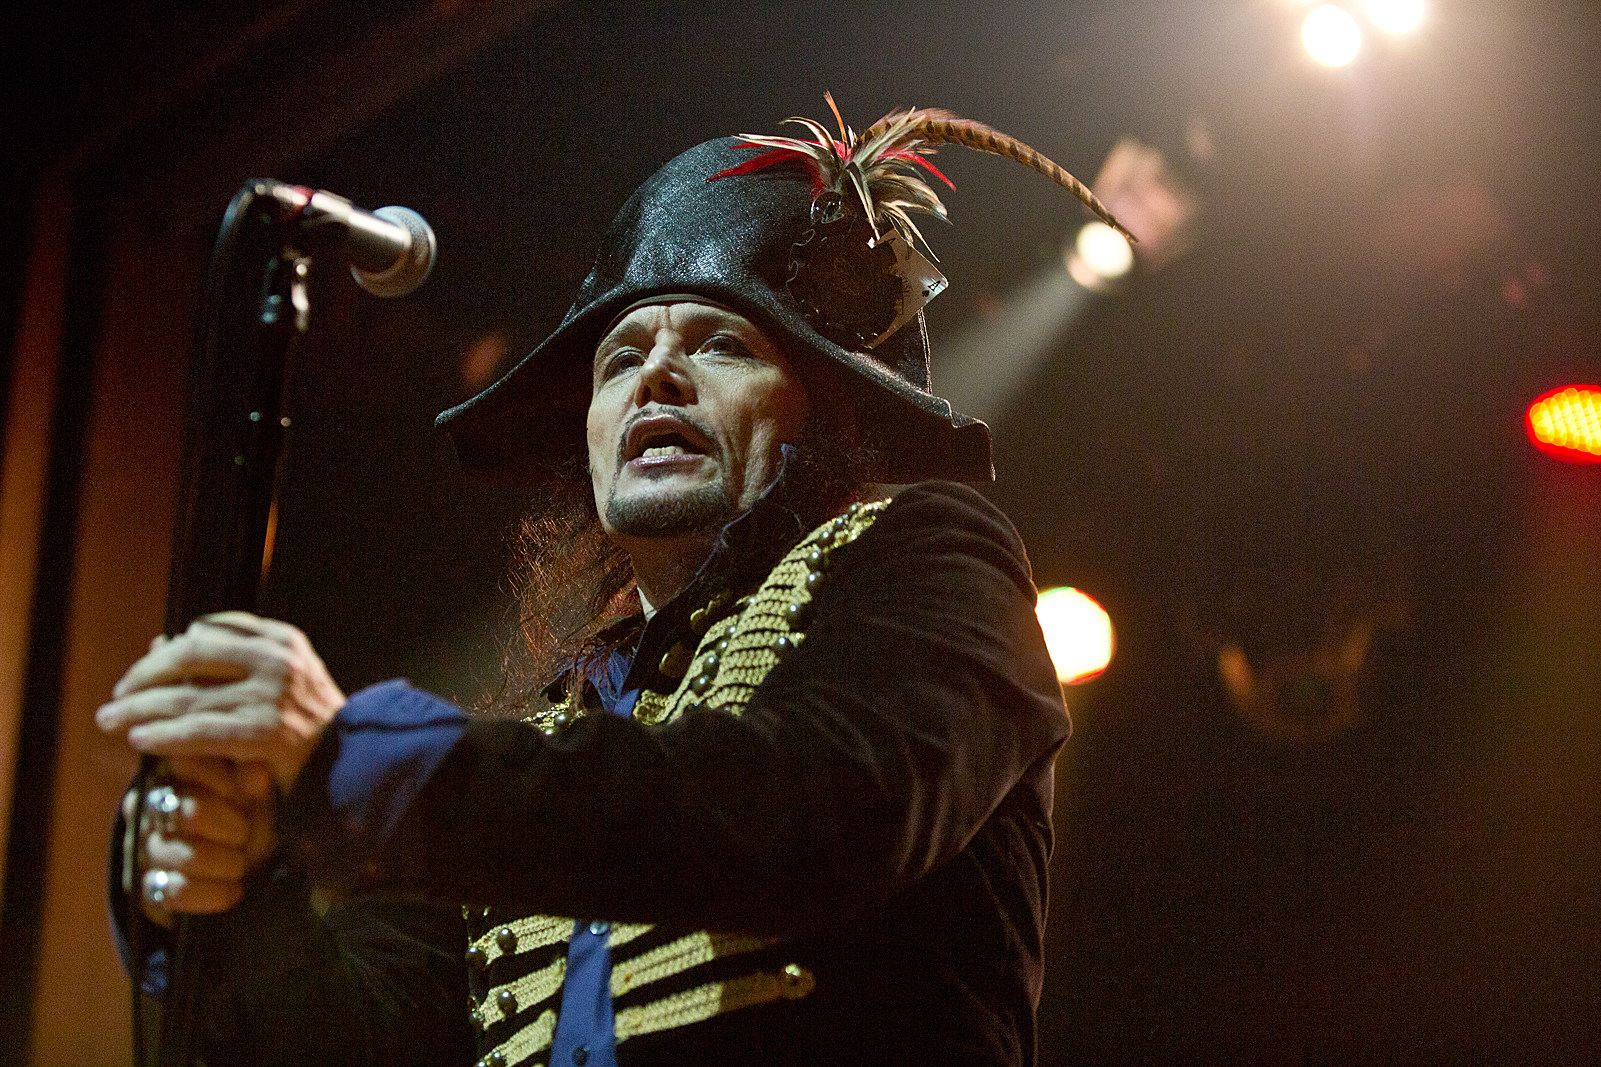 Adam Ant Us Tour 2020 Adam Ant playing 'Friend or Foe' on 2019 North American tour